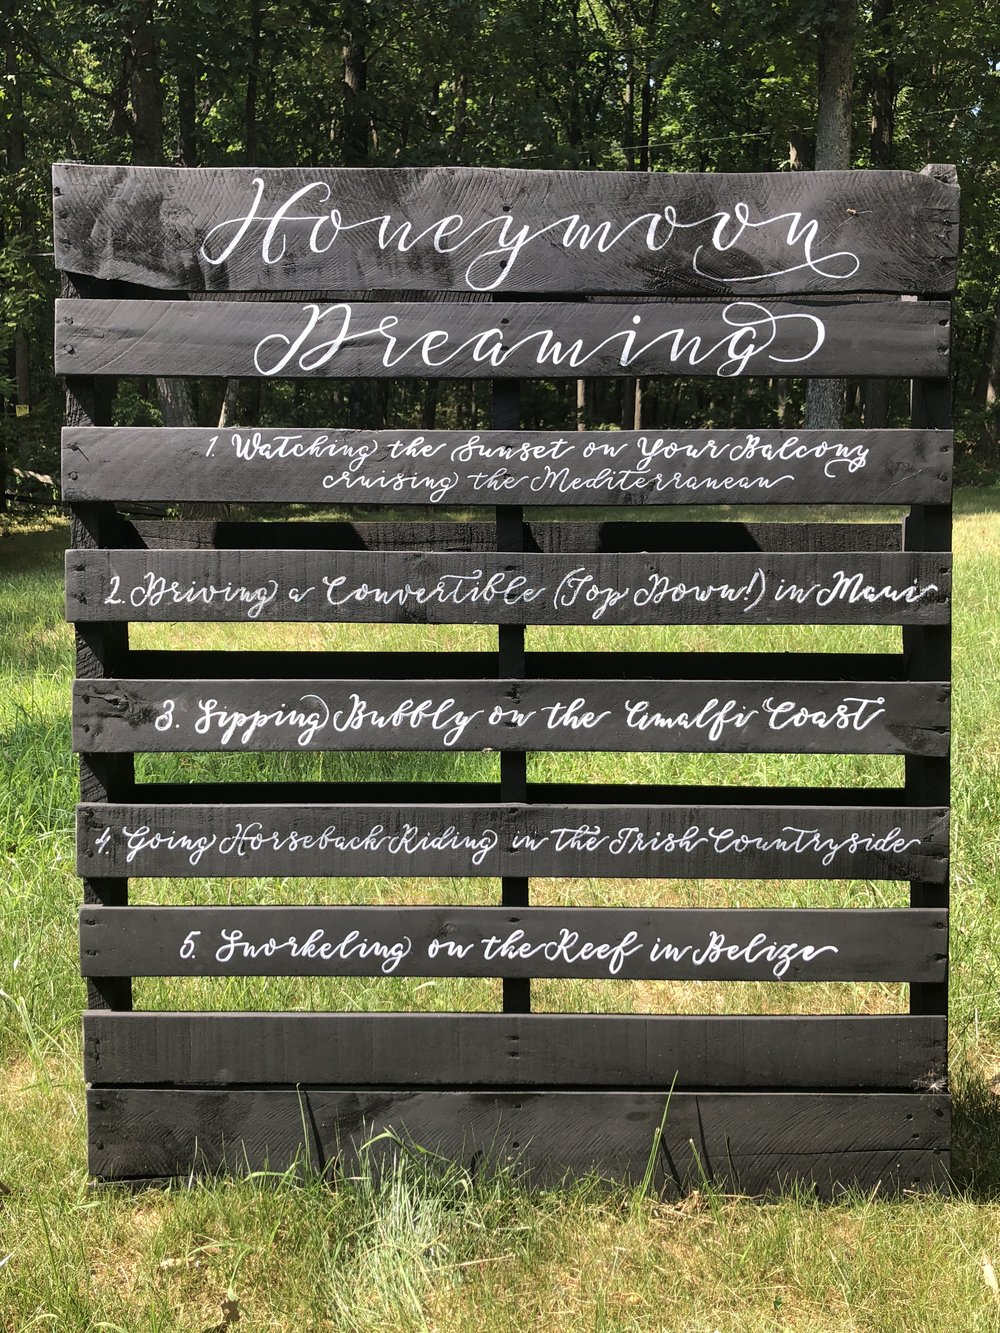 Central PA, York PA, JesSmith Designs, custom, wedding, invitations, bridal, Harrisburg, hanover, calligraphy, baltimore, wedding invitations, lancaster, gettysburg, 07-16 15.49.20.jpg